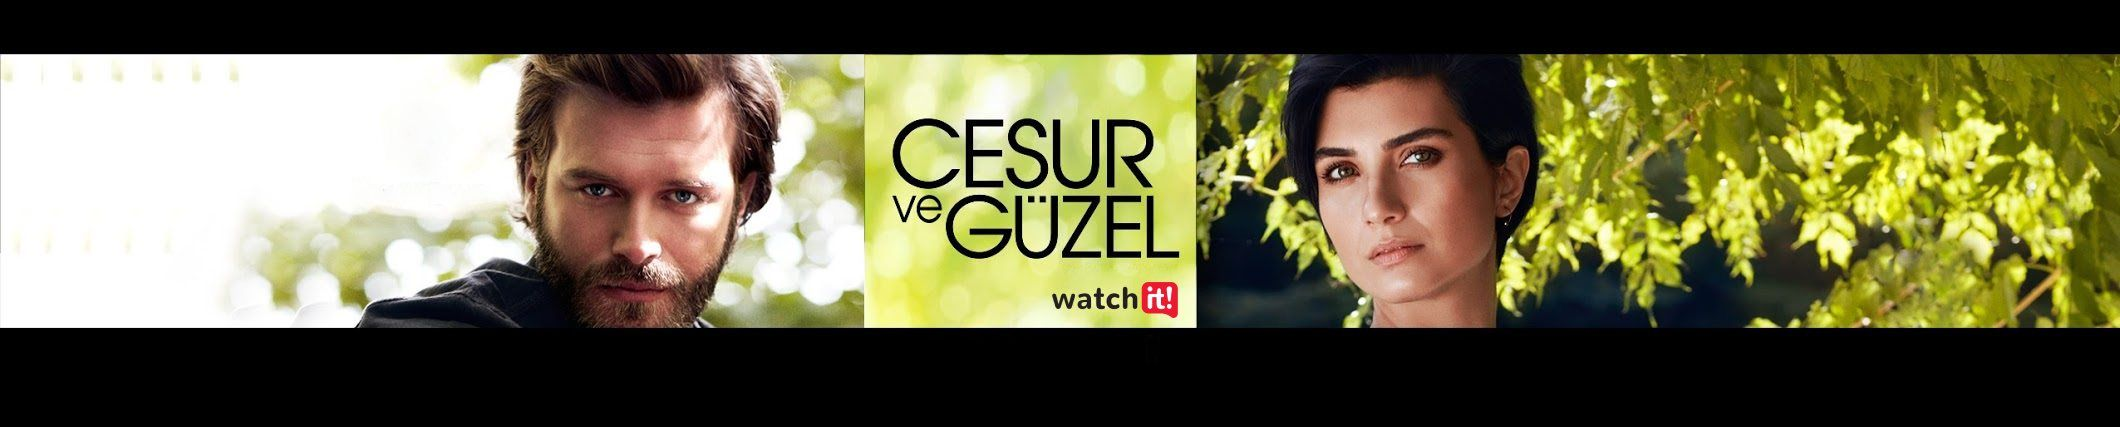 Cesur ve Guzel English subtitles | Brave and Beautiful